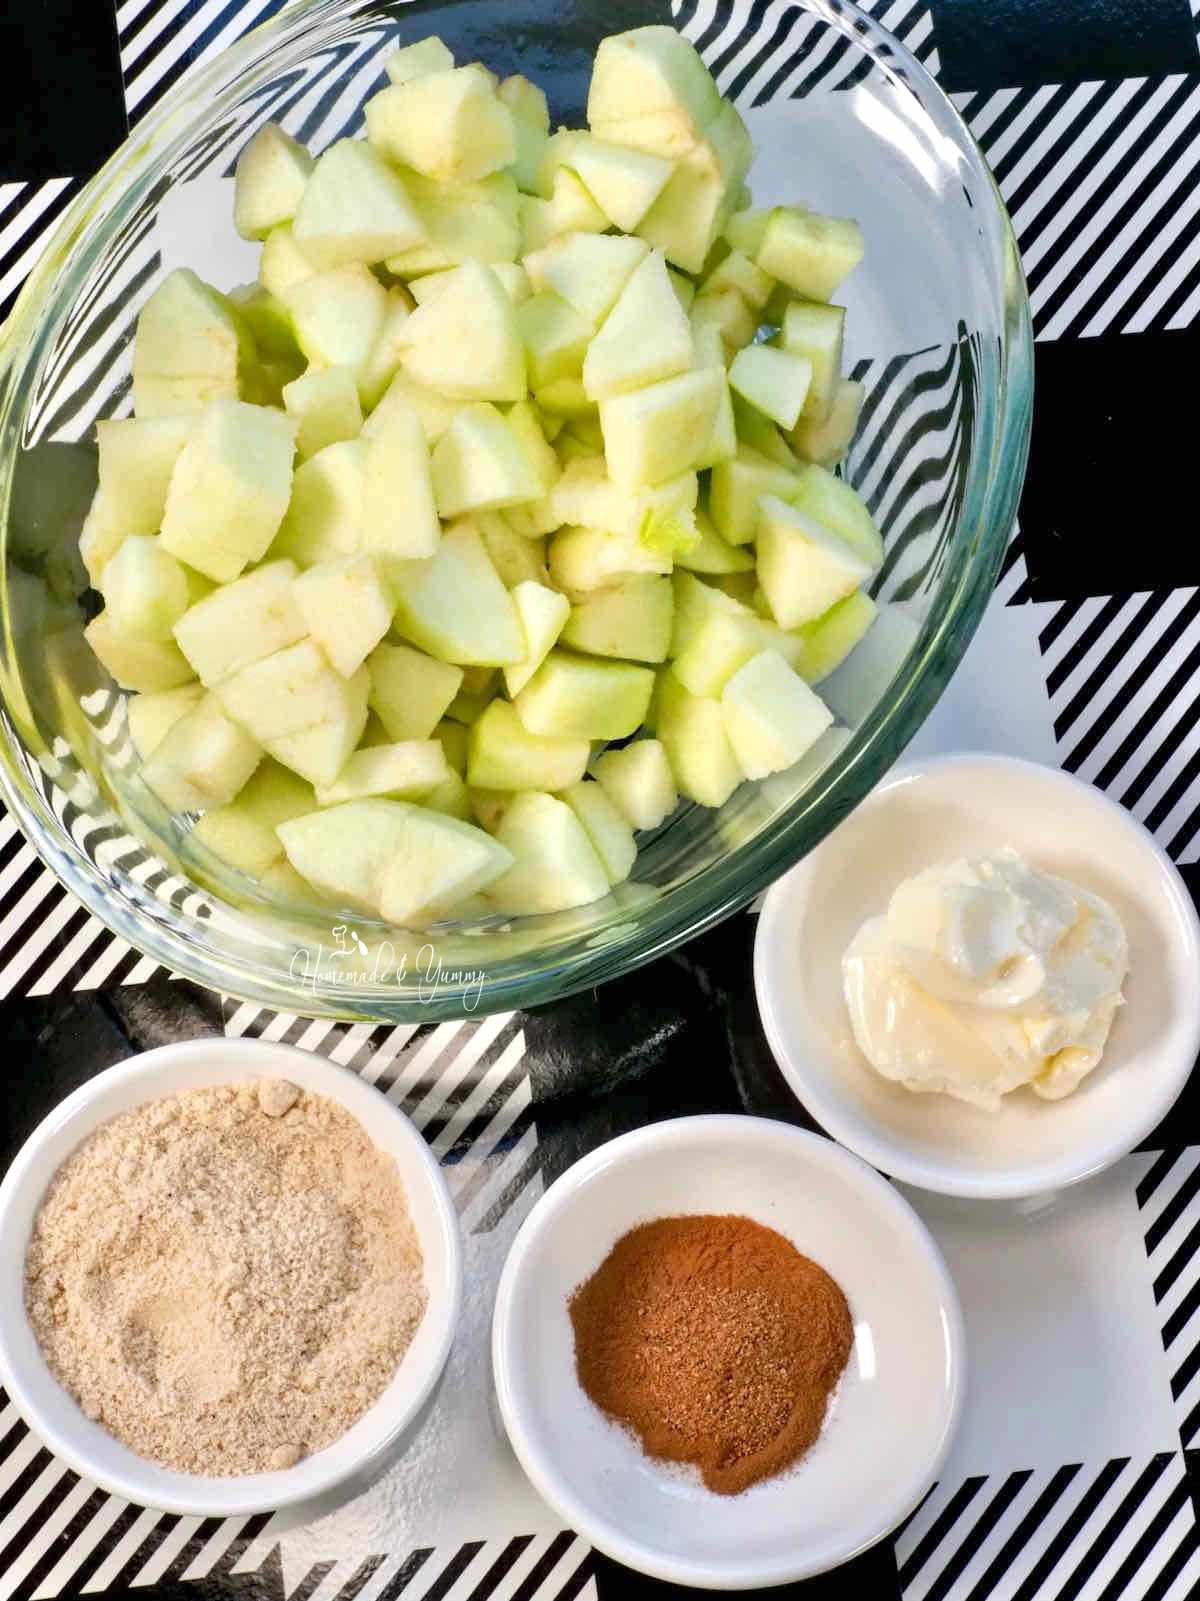 Ingredients for making this apple recipe.